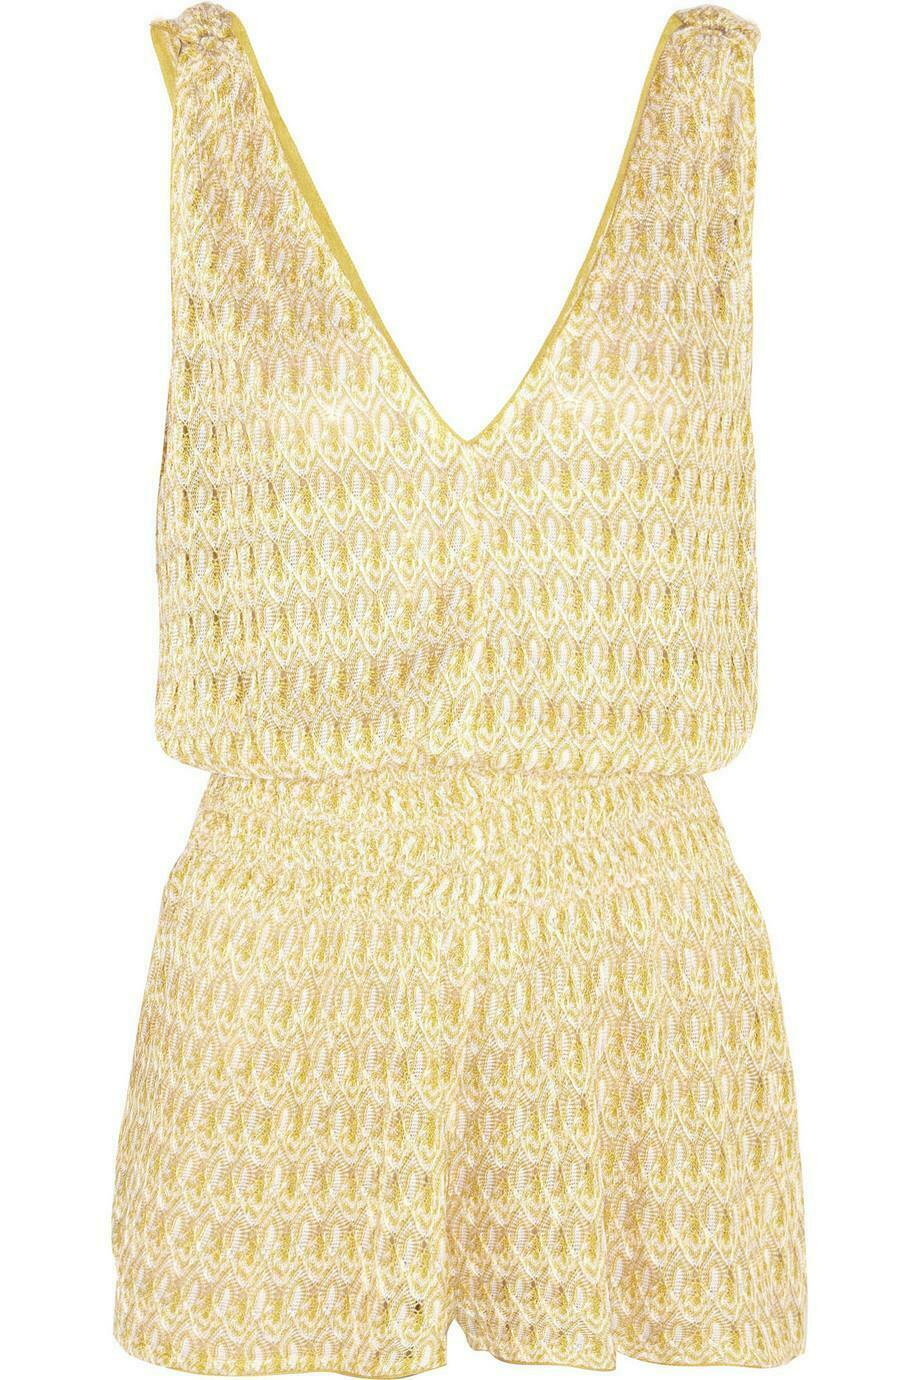 MISSONI DIAMANTINO RILIEVO CROCHET KNIT PLAYSUIT IT 38